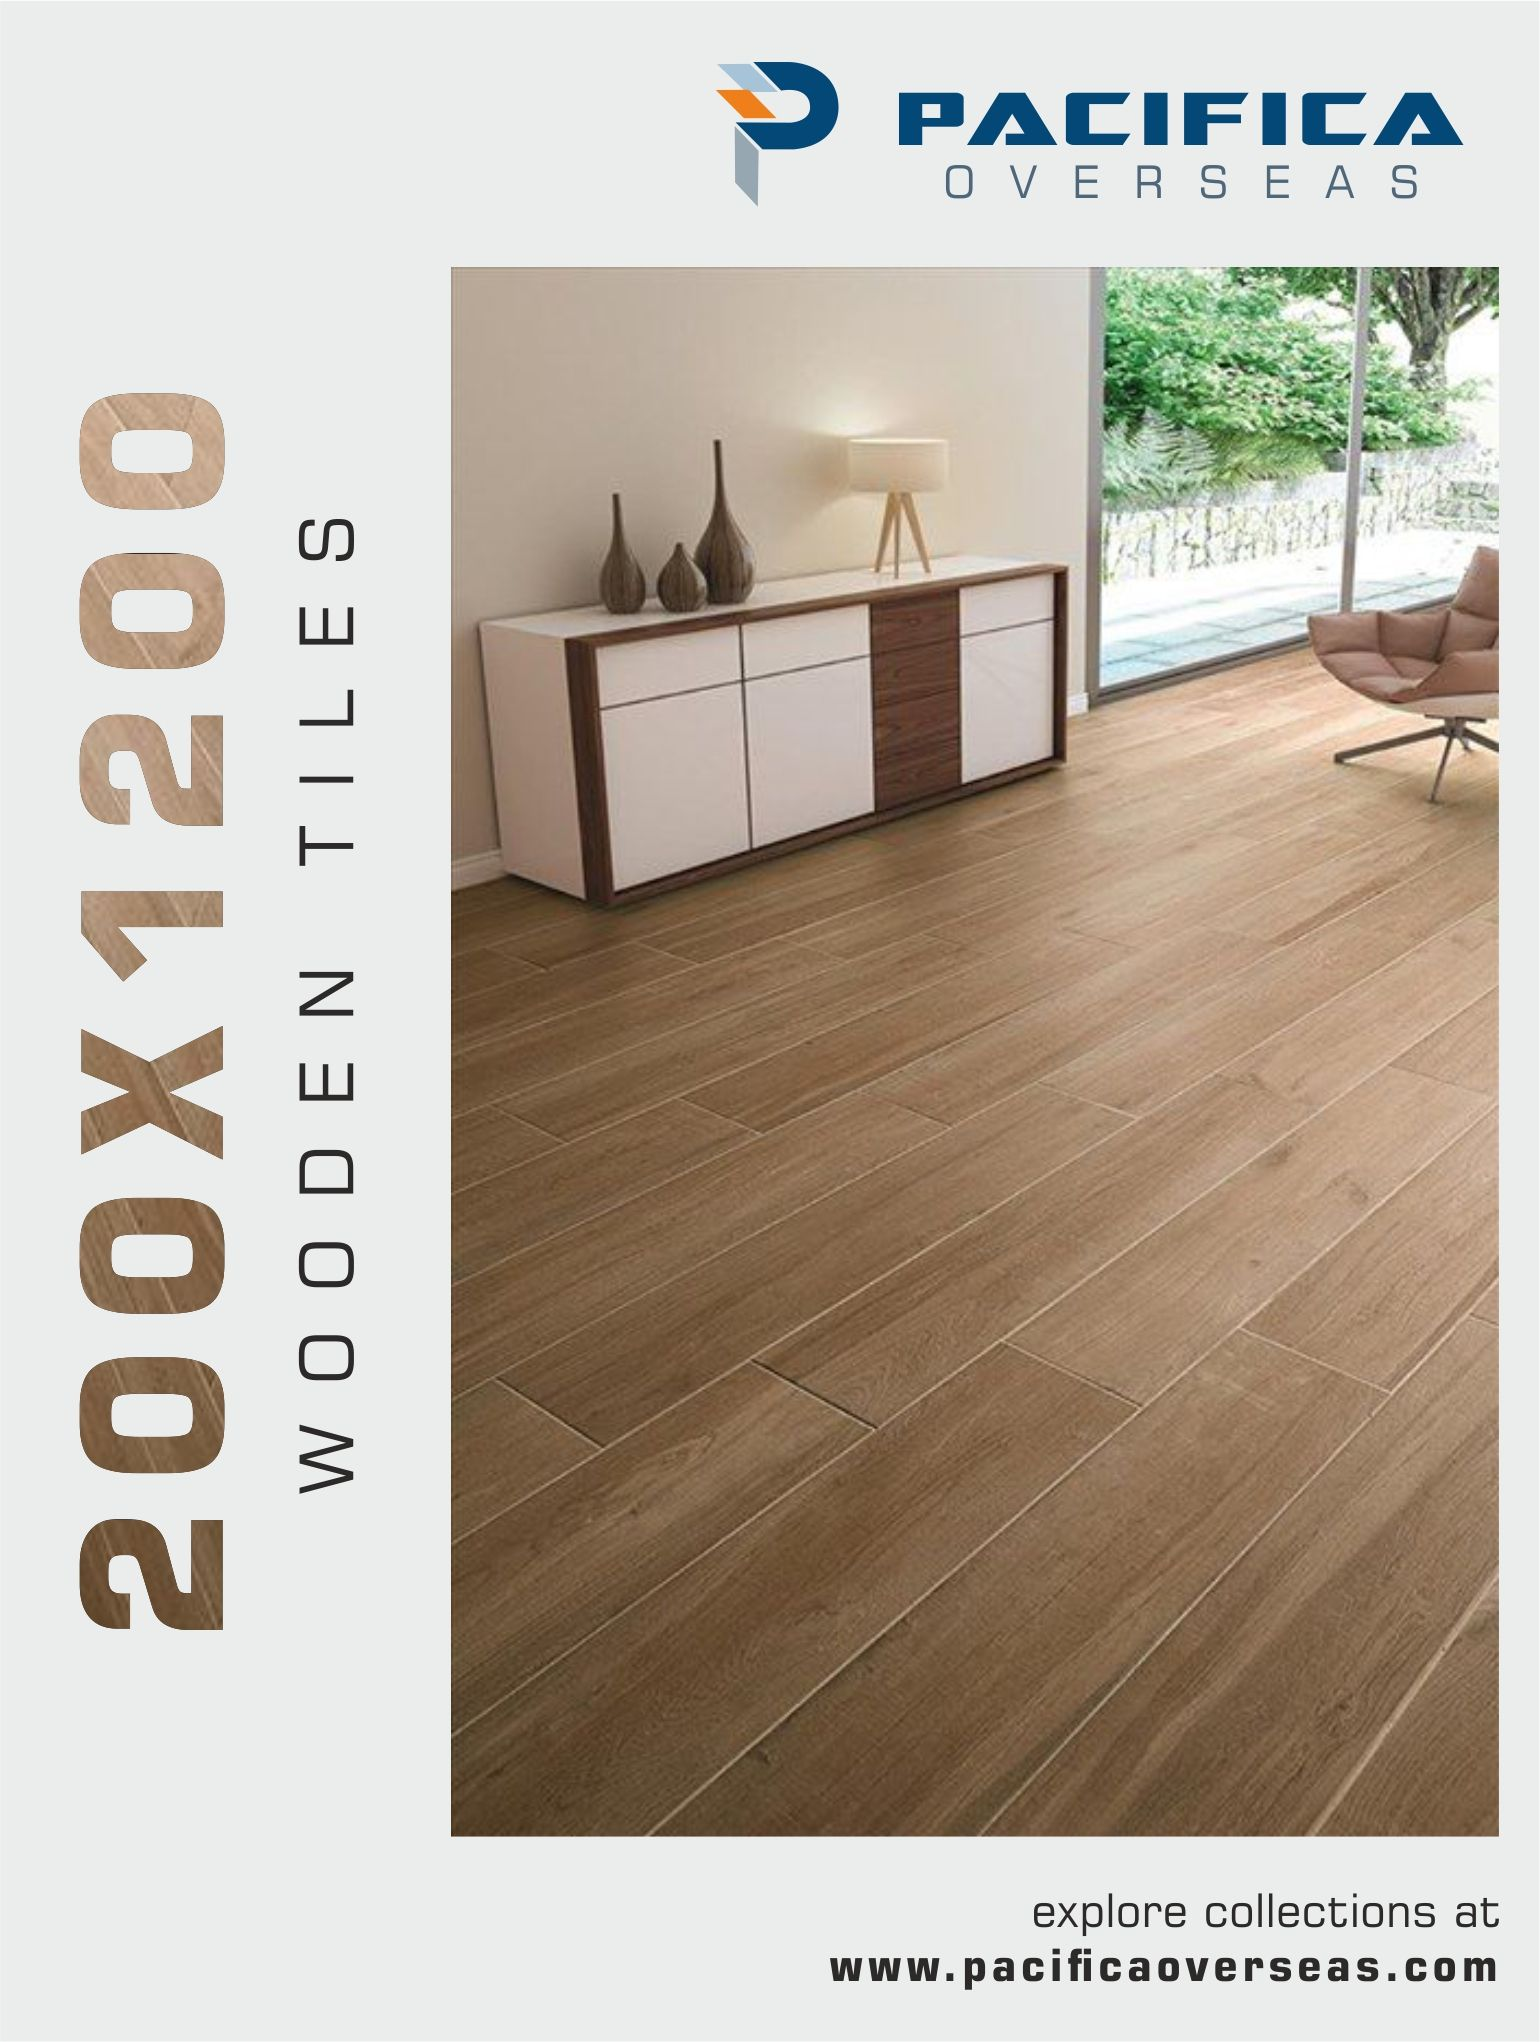 200 X 1200 Mm Wooden Flooring Tile Collections In Morbi In 2020 Flooring Tile Floor Wooden Flooring